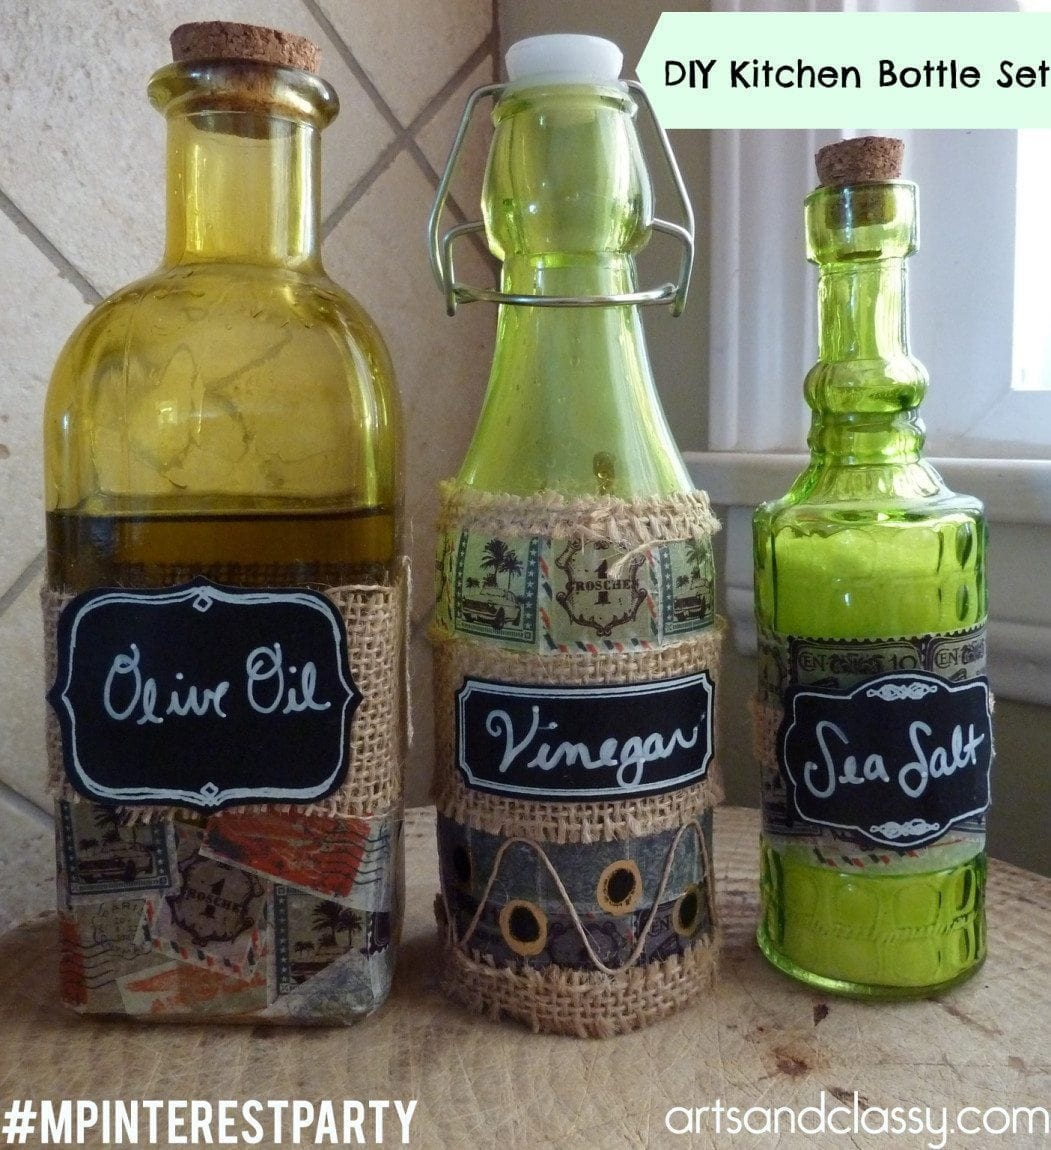 Michaels_Pinterest_Hometalk_Party_Arts_and_Classy_Blog_Crafting_02 2